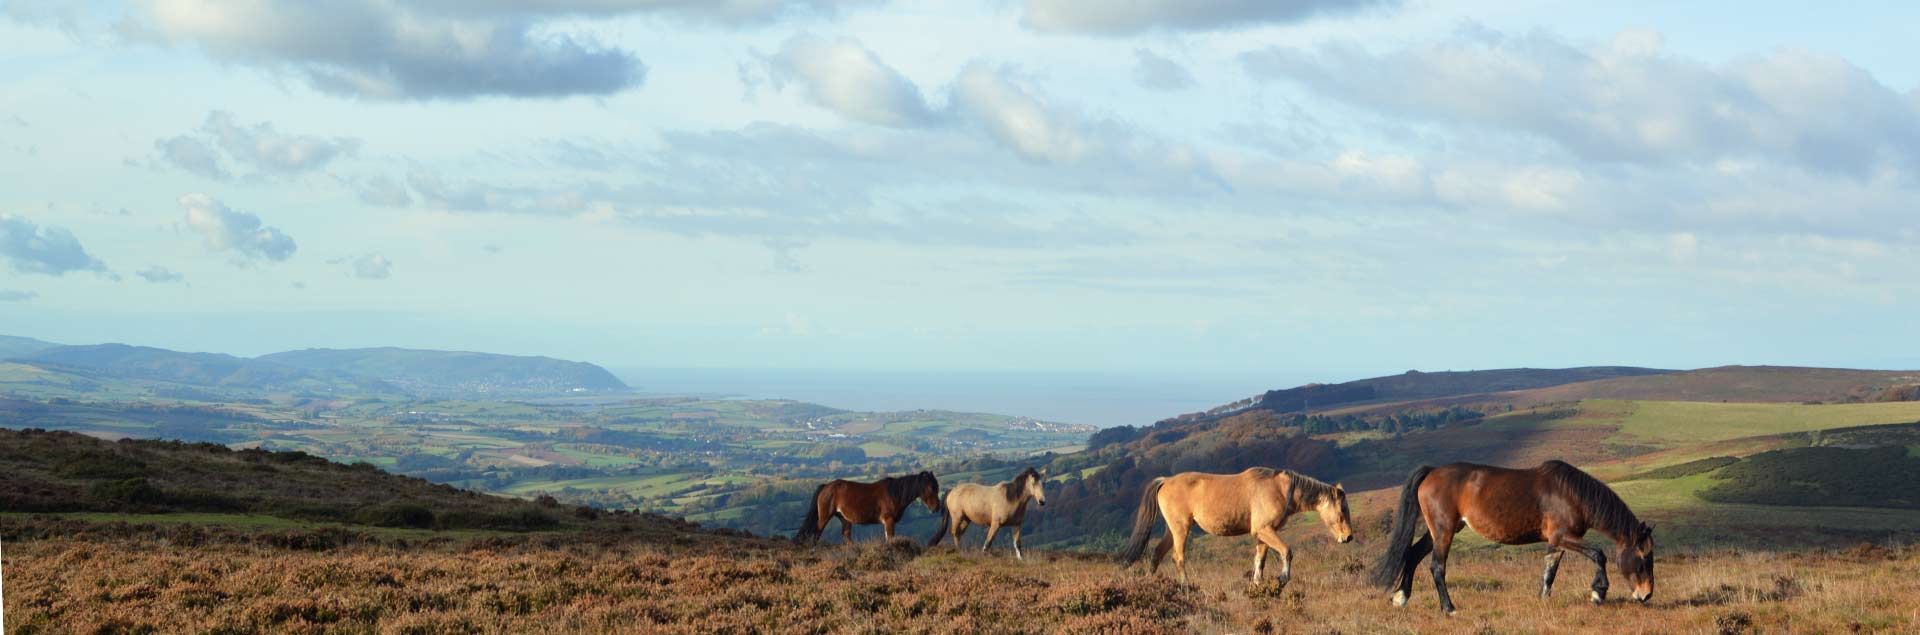 Wild ponies on the Quantocks in Somerset, looking over to Minehead and the edge of Exmoor.